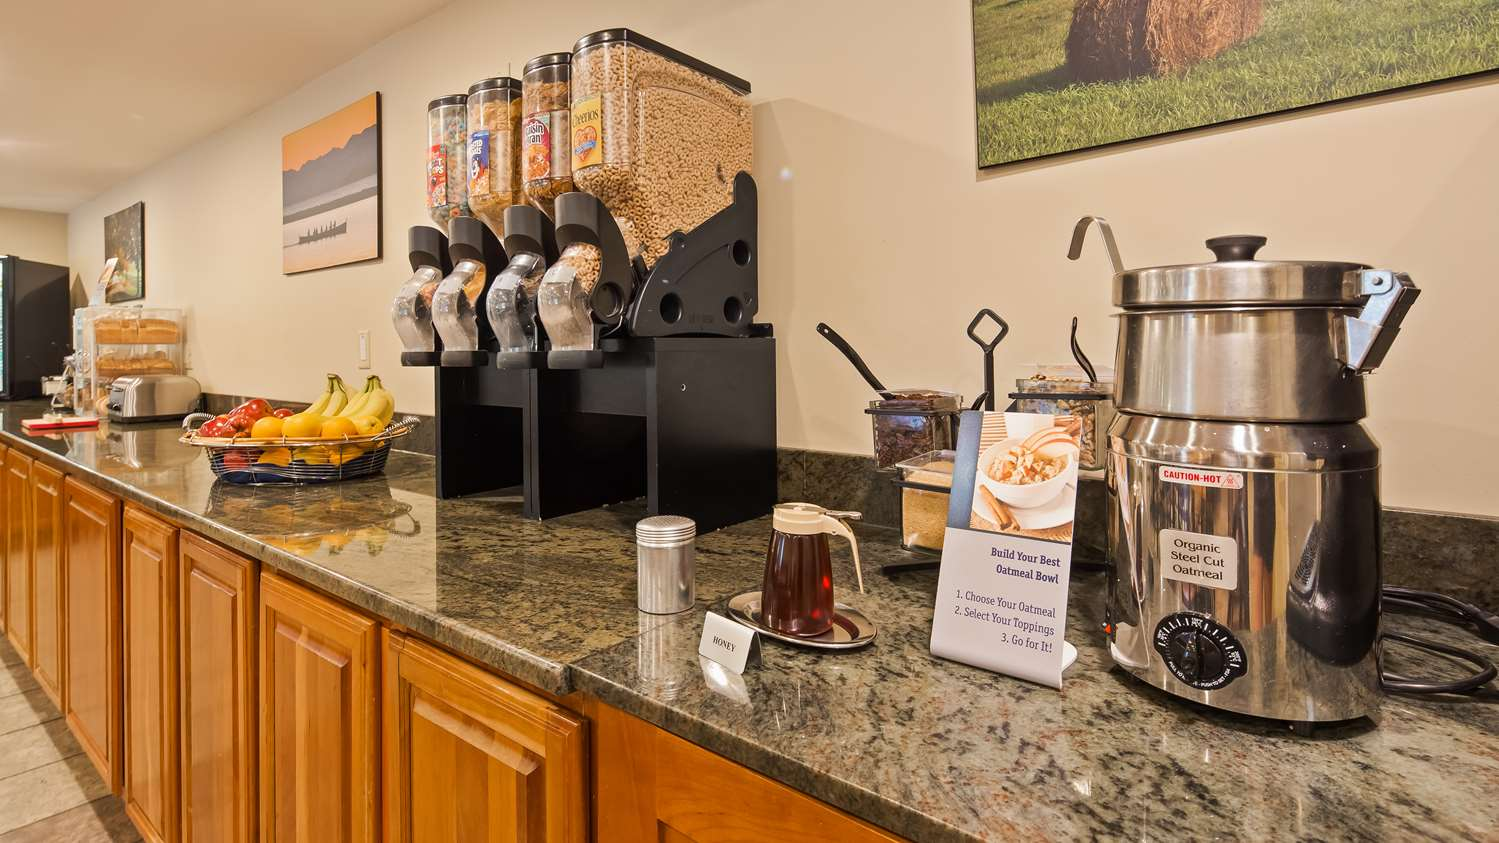 Restaurant - Best Western Plus Windjammer Inn South Burlington